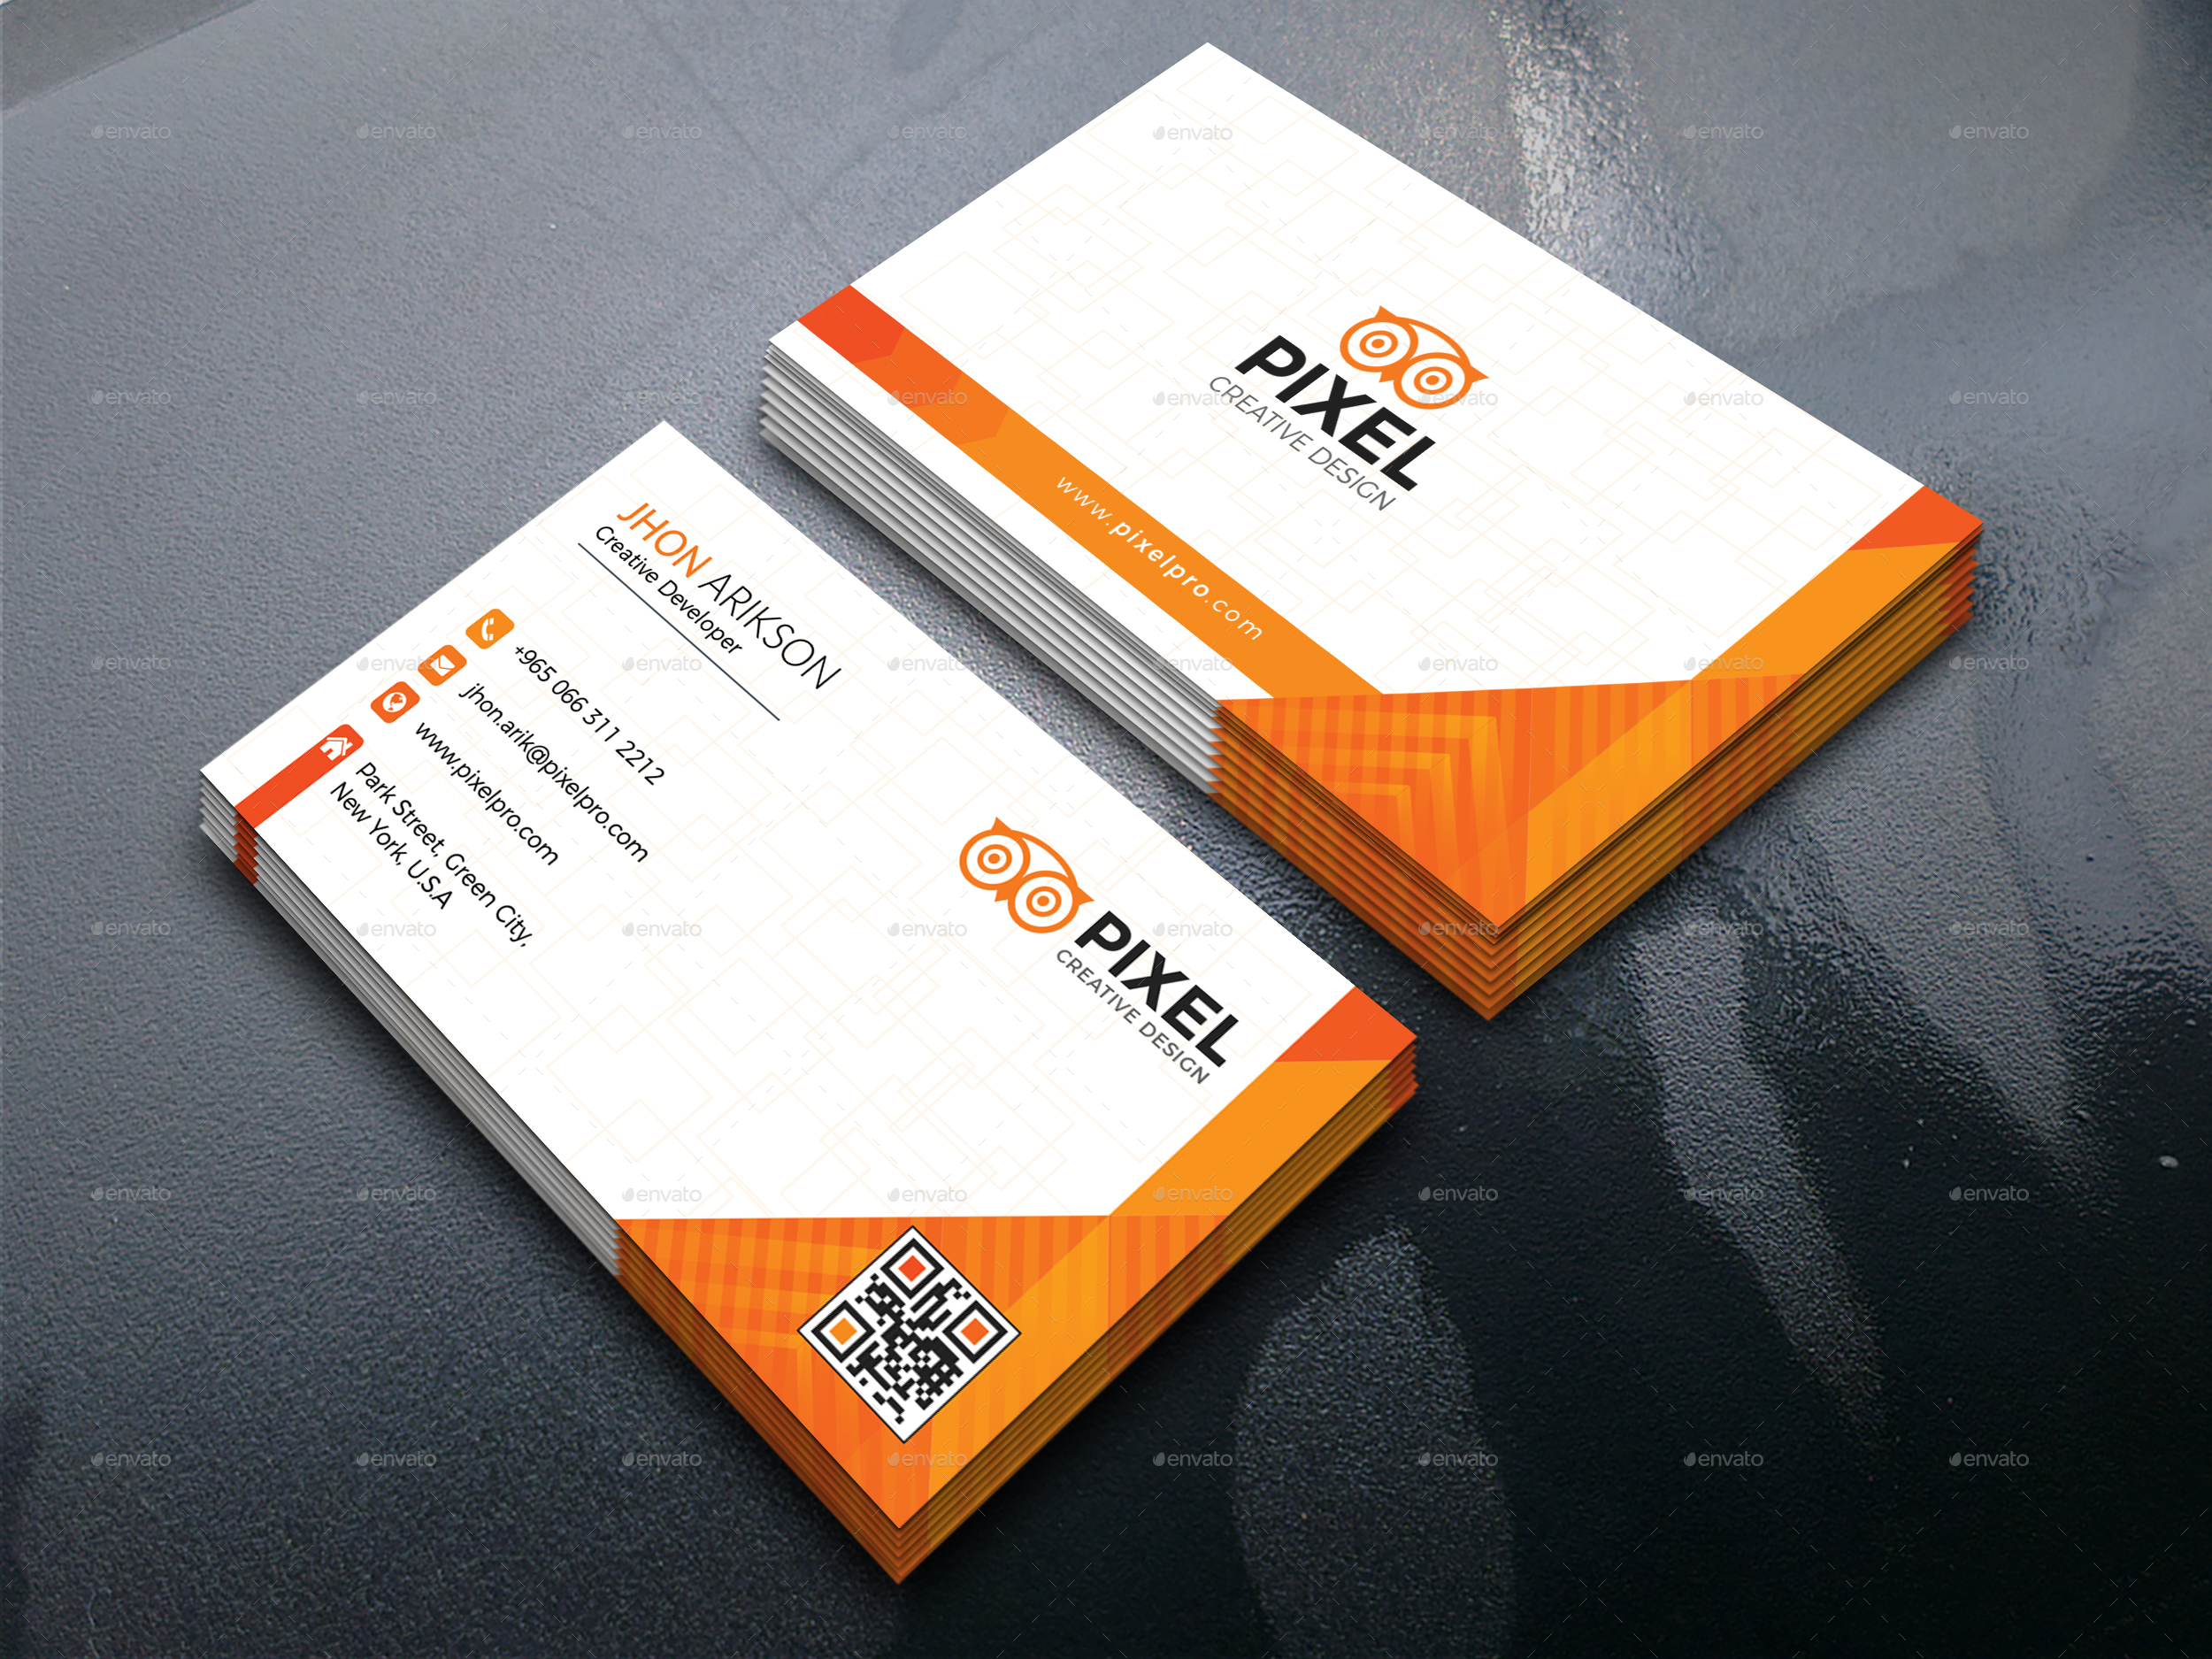 Business card print template by colorsstudio graphicriver business cards print templates screenshoots 1g screenshoots 2g reheart Gallery